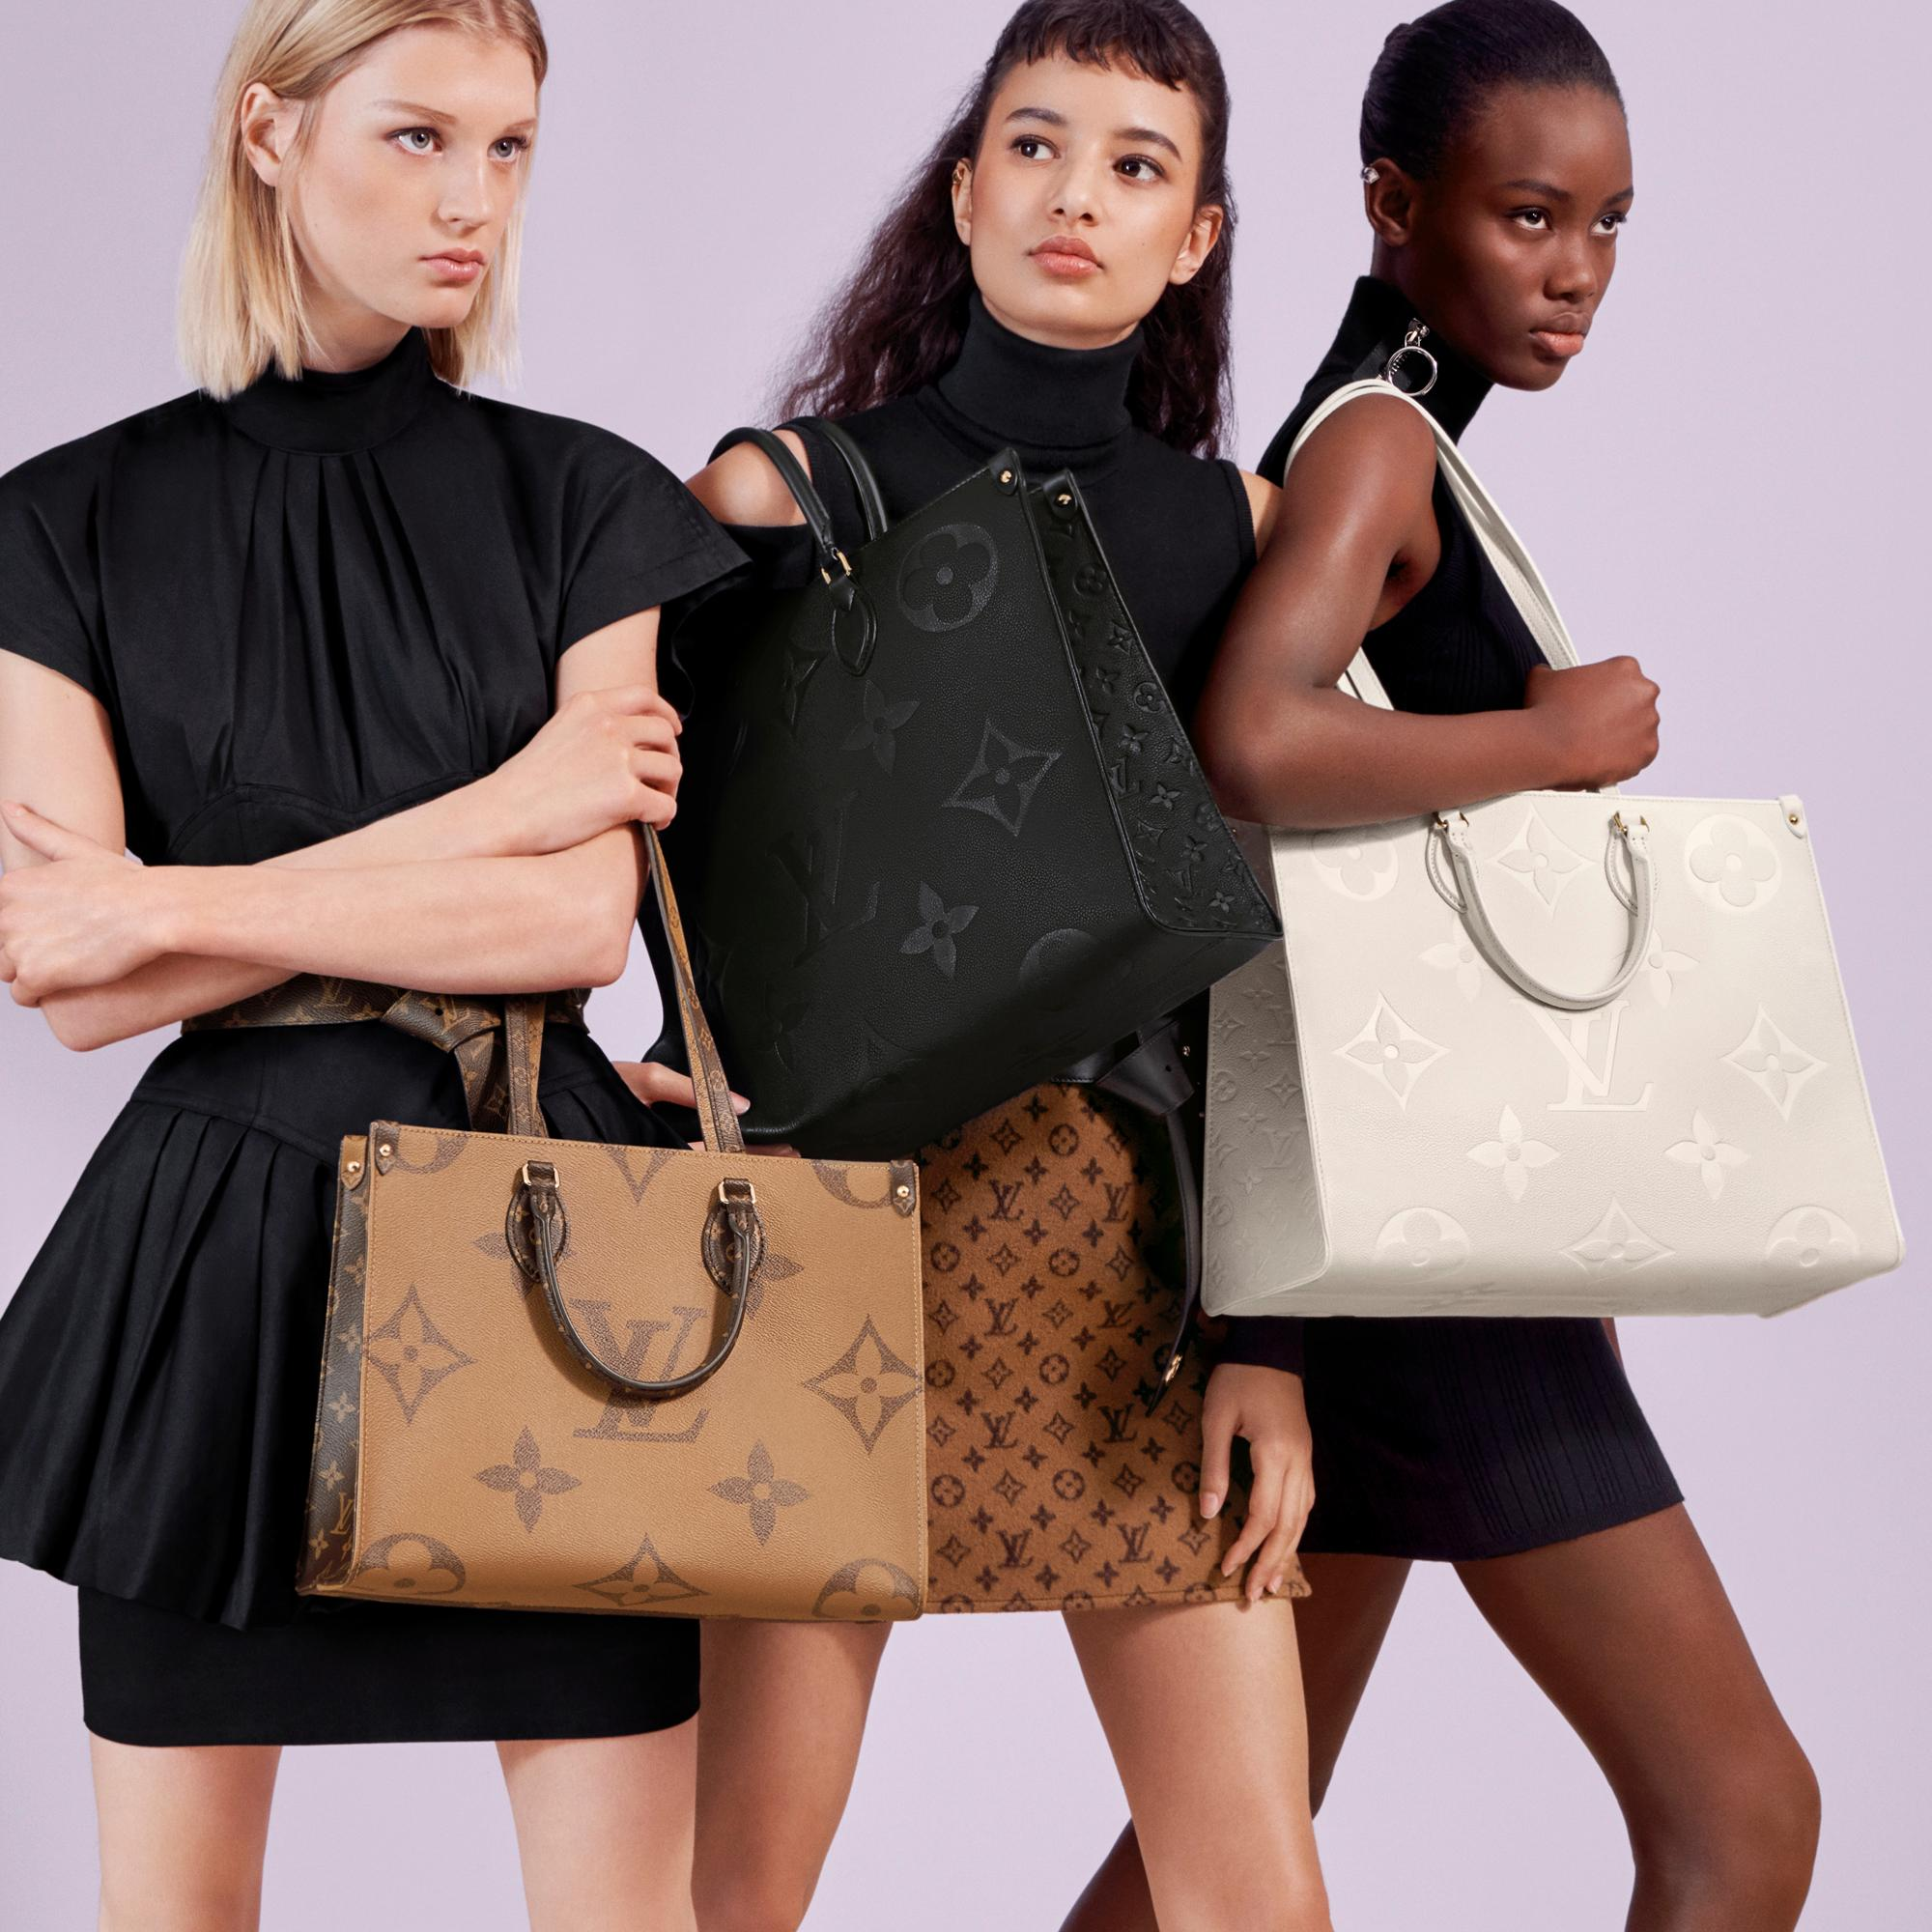 Why Louis Vuitton Malaysia is trending